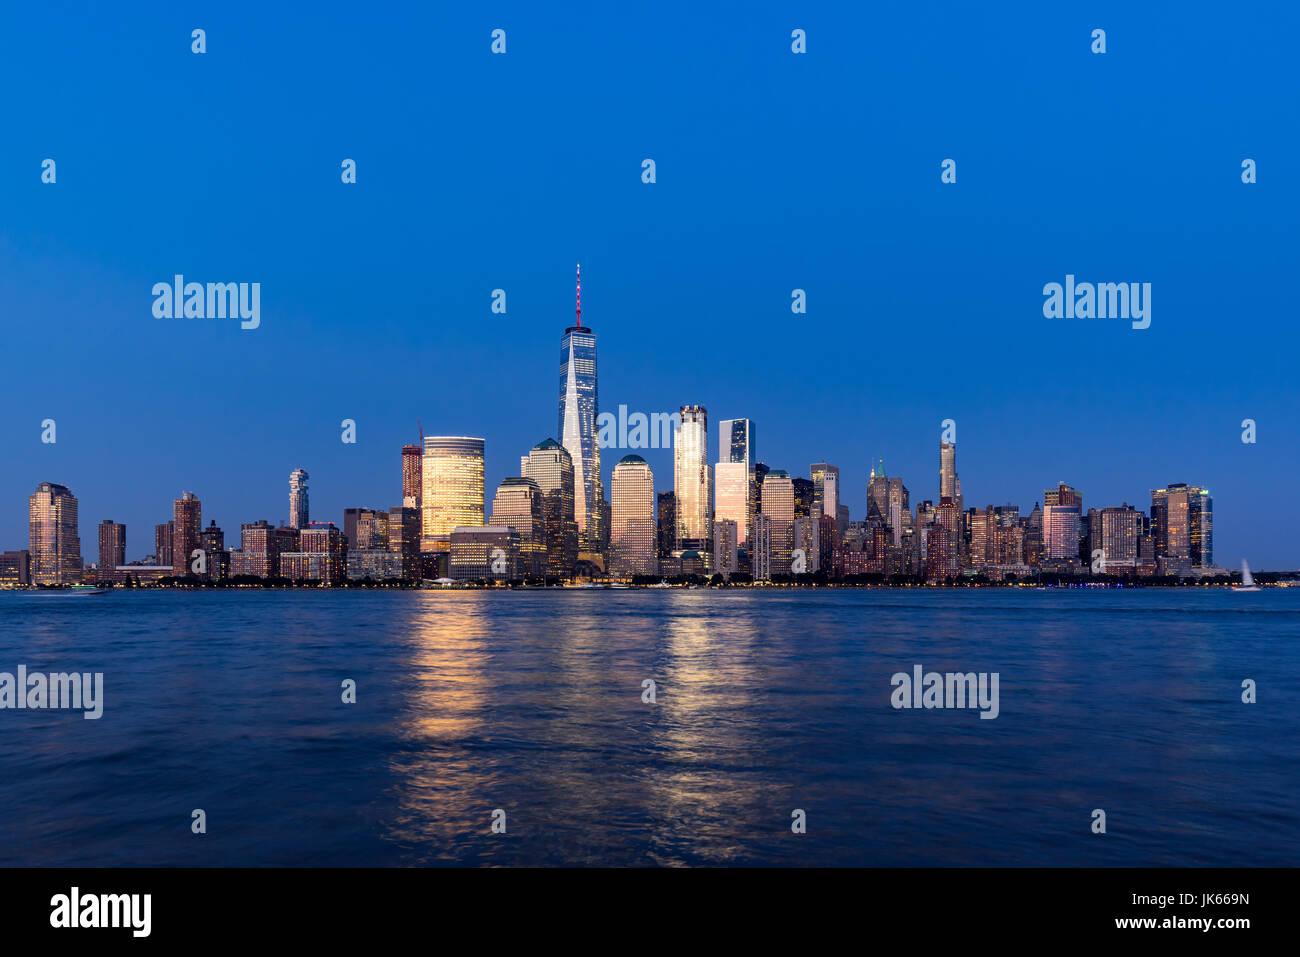 New York City Financial District skyscrapers and Hudson River at dusk. Lower Manhattan - Stock Image